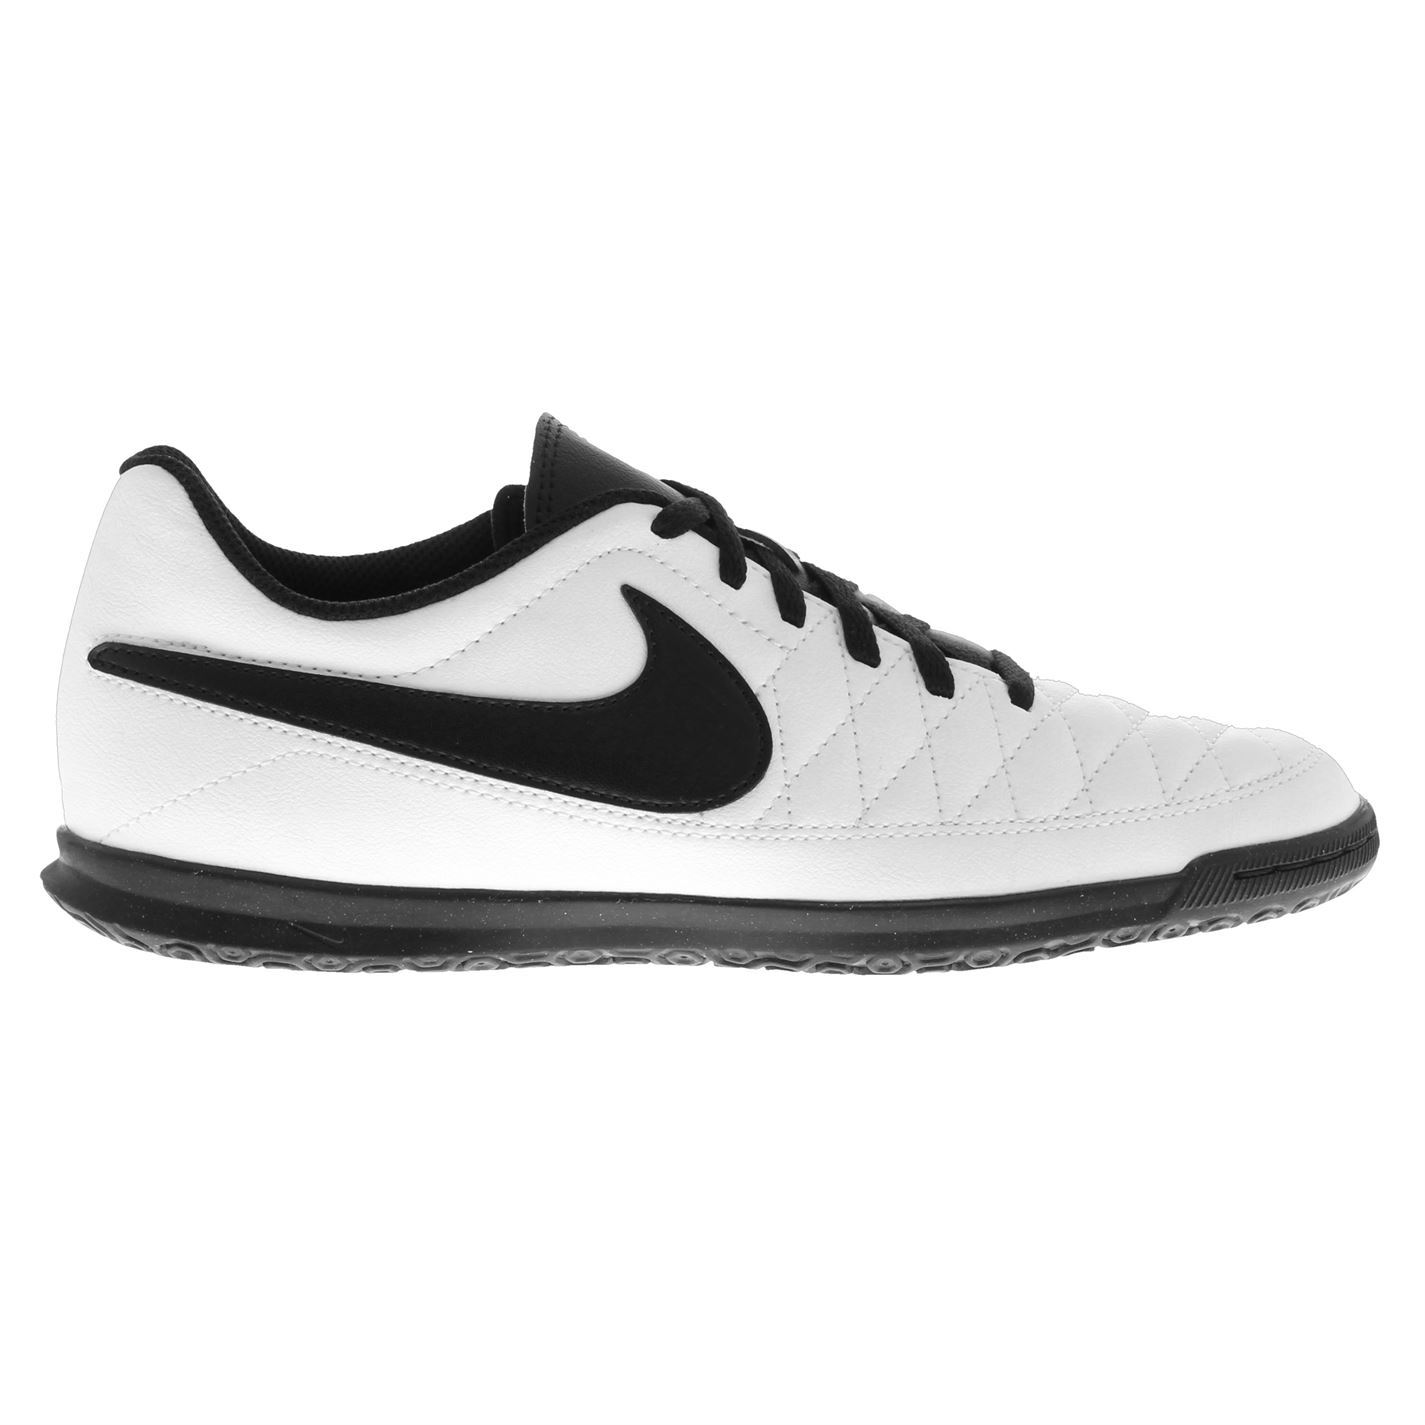 Nike-majestry-Indoor-Football-Baskets-Pour-Homme-Football-Futsal-Chaussures-Baskets-Bottes miniature 24